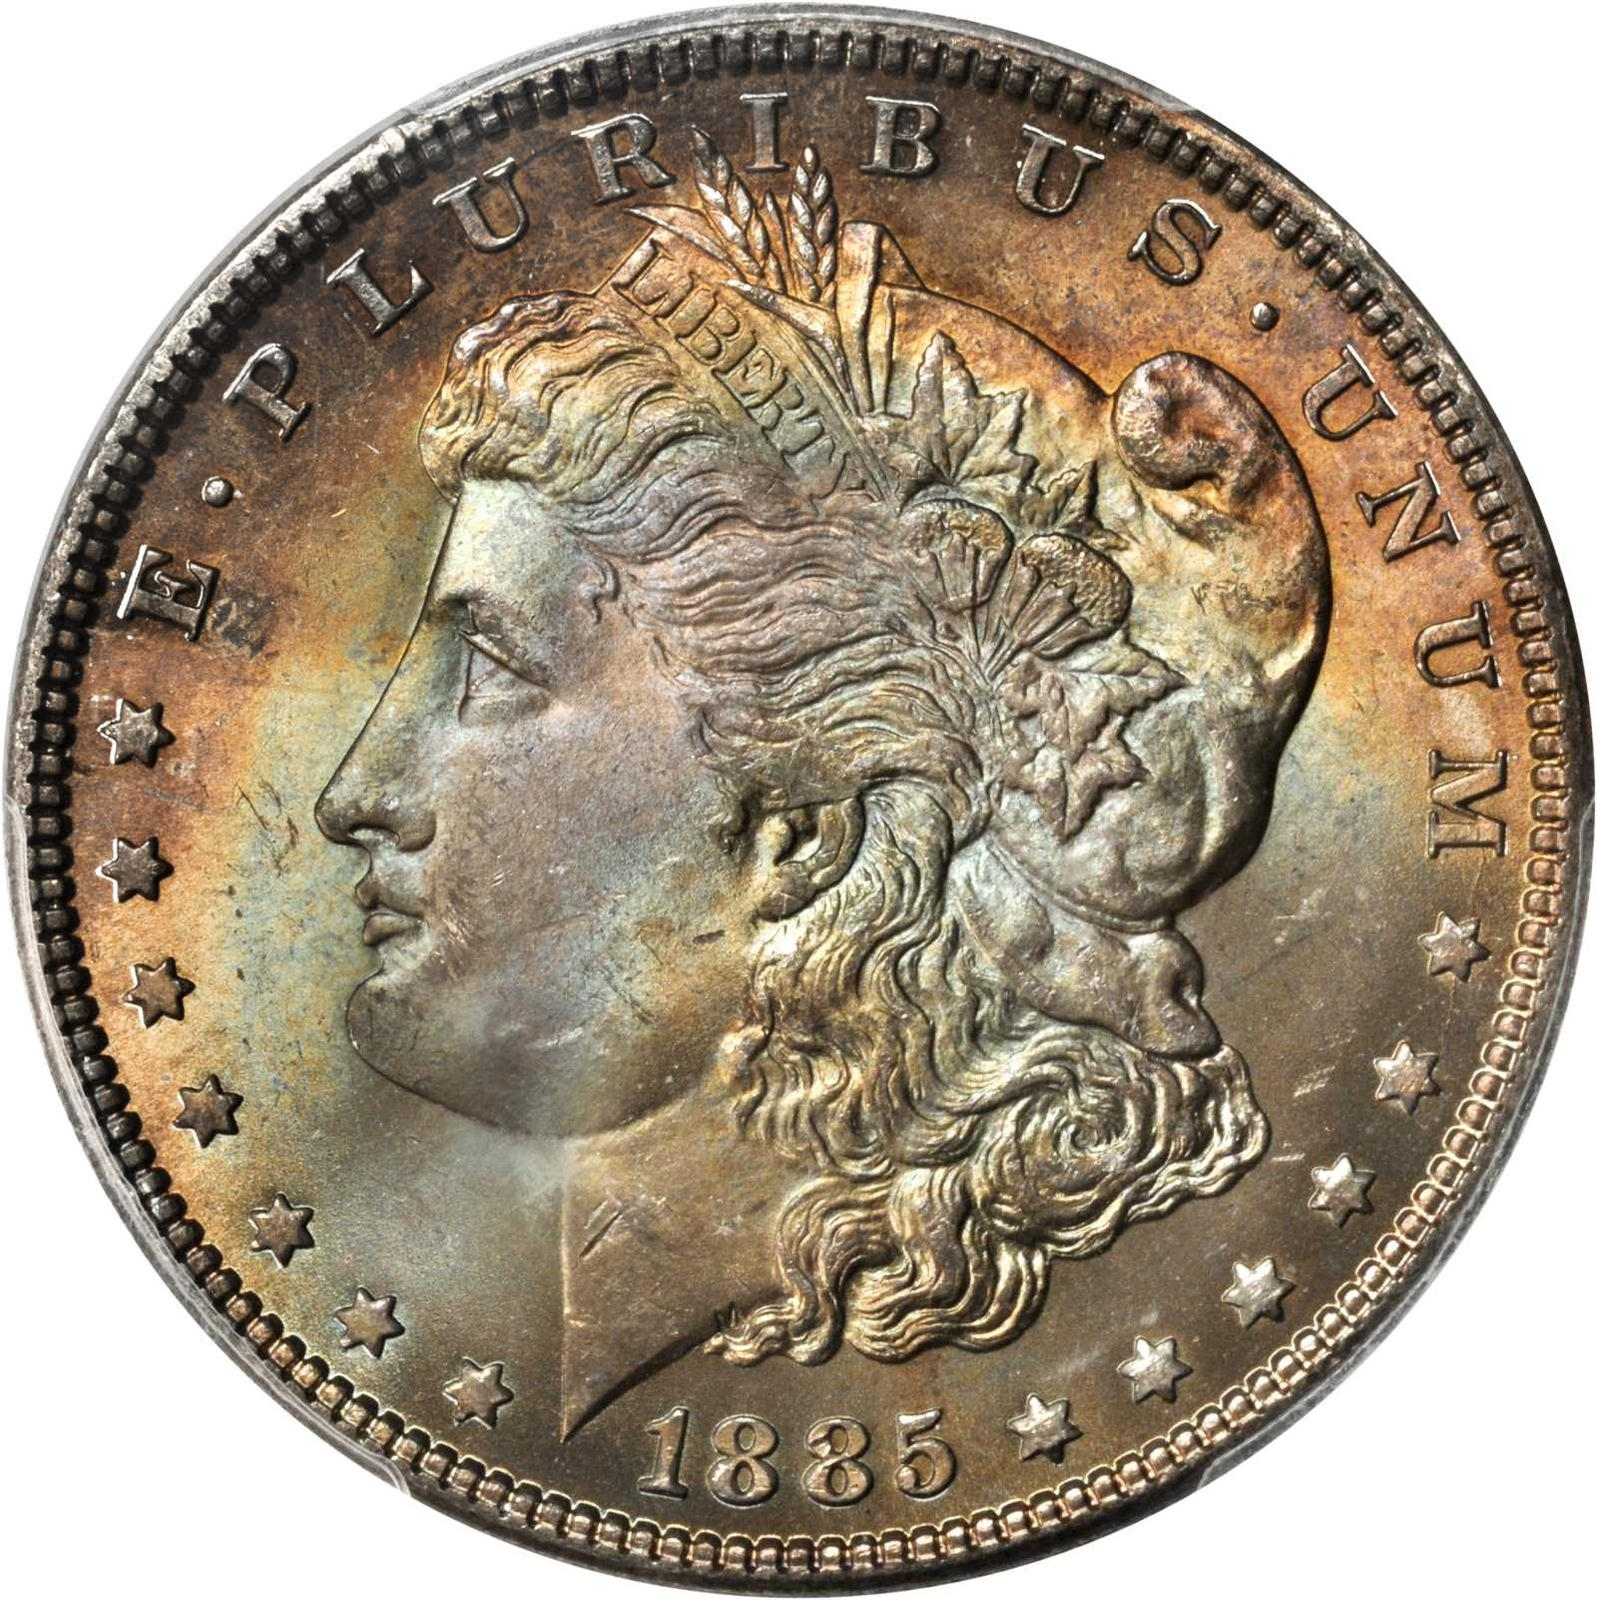 Value Of 1885 Morgan Dollar Rare Silver Dollar Buyers